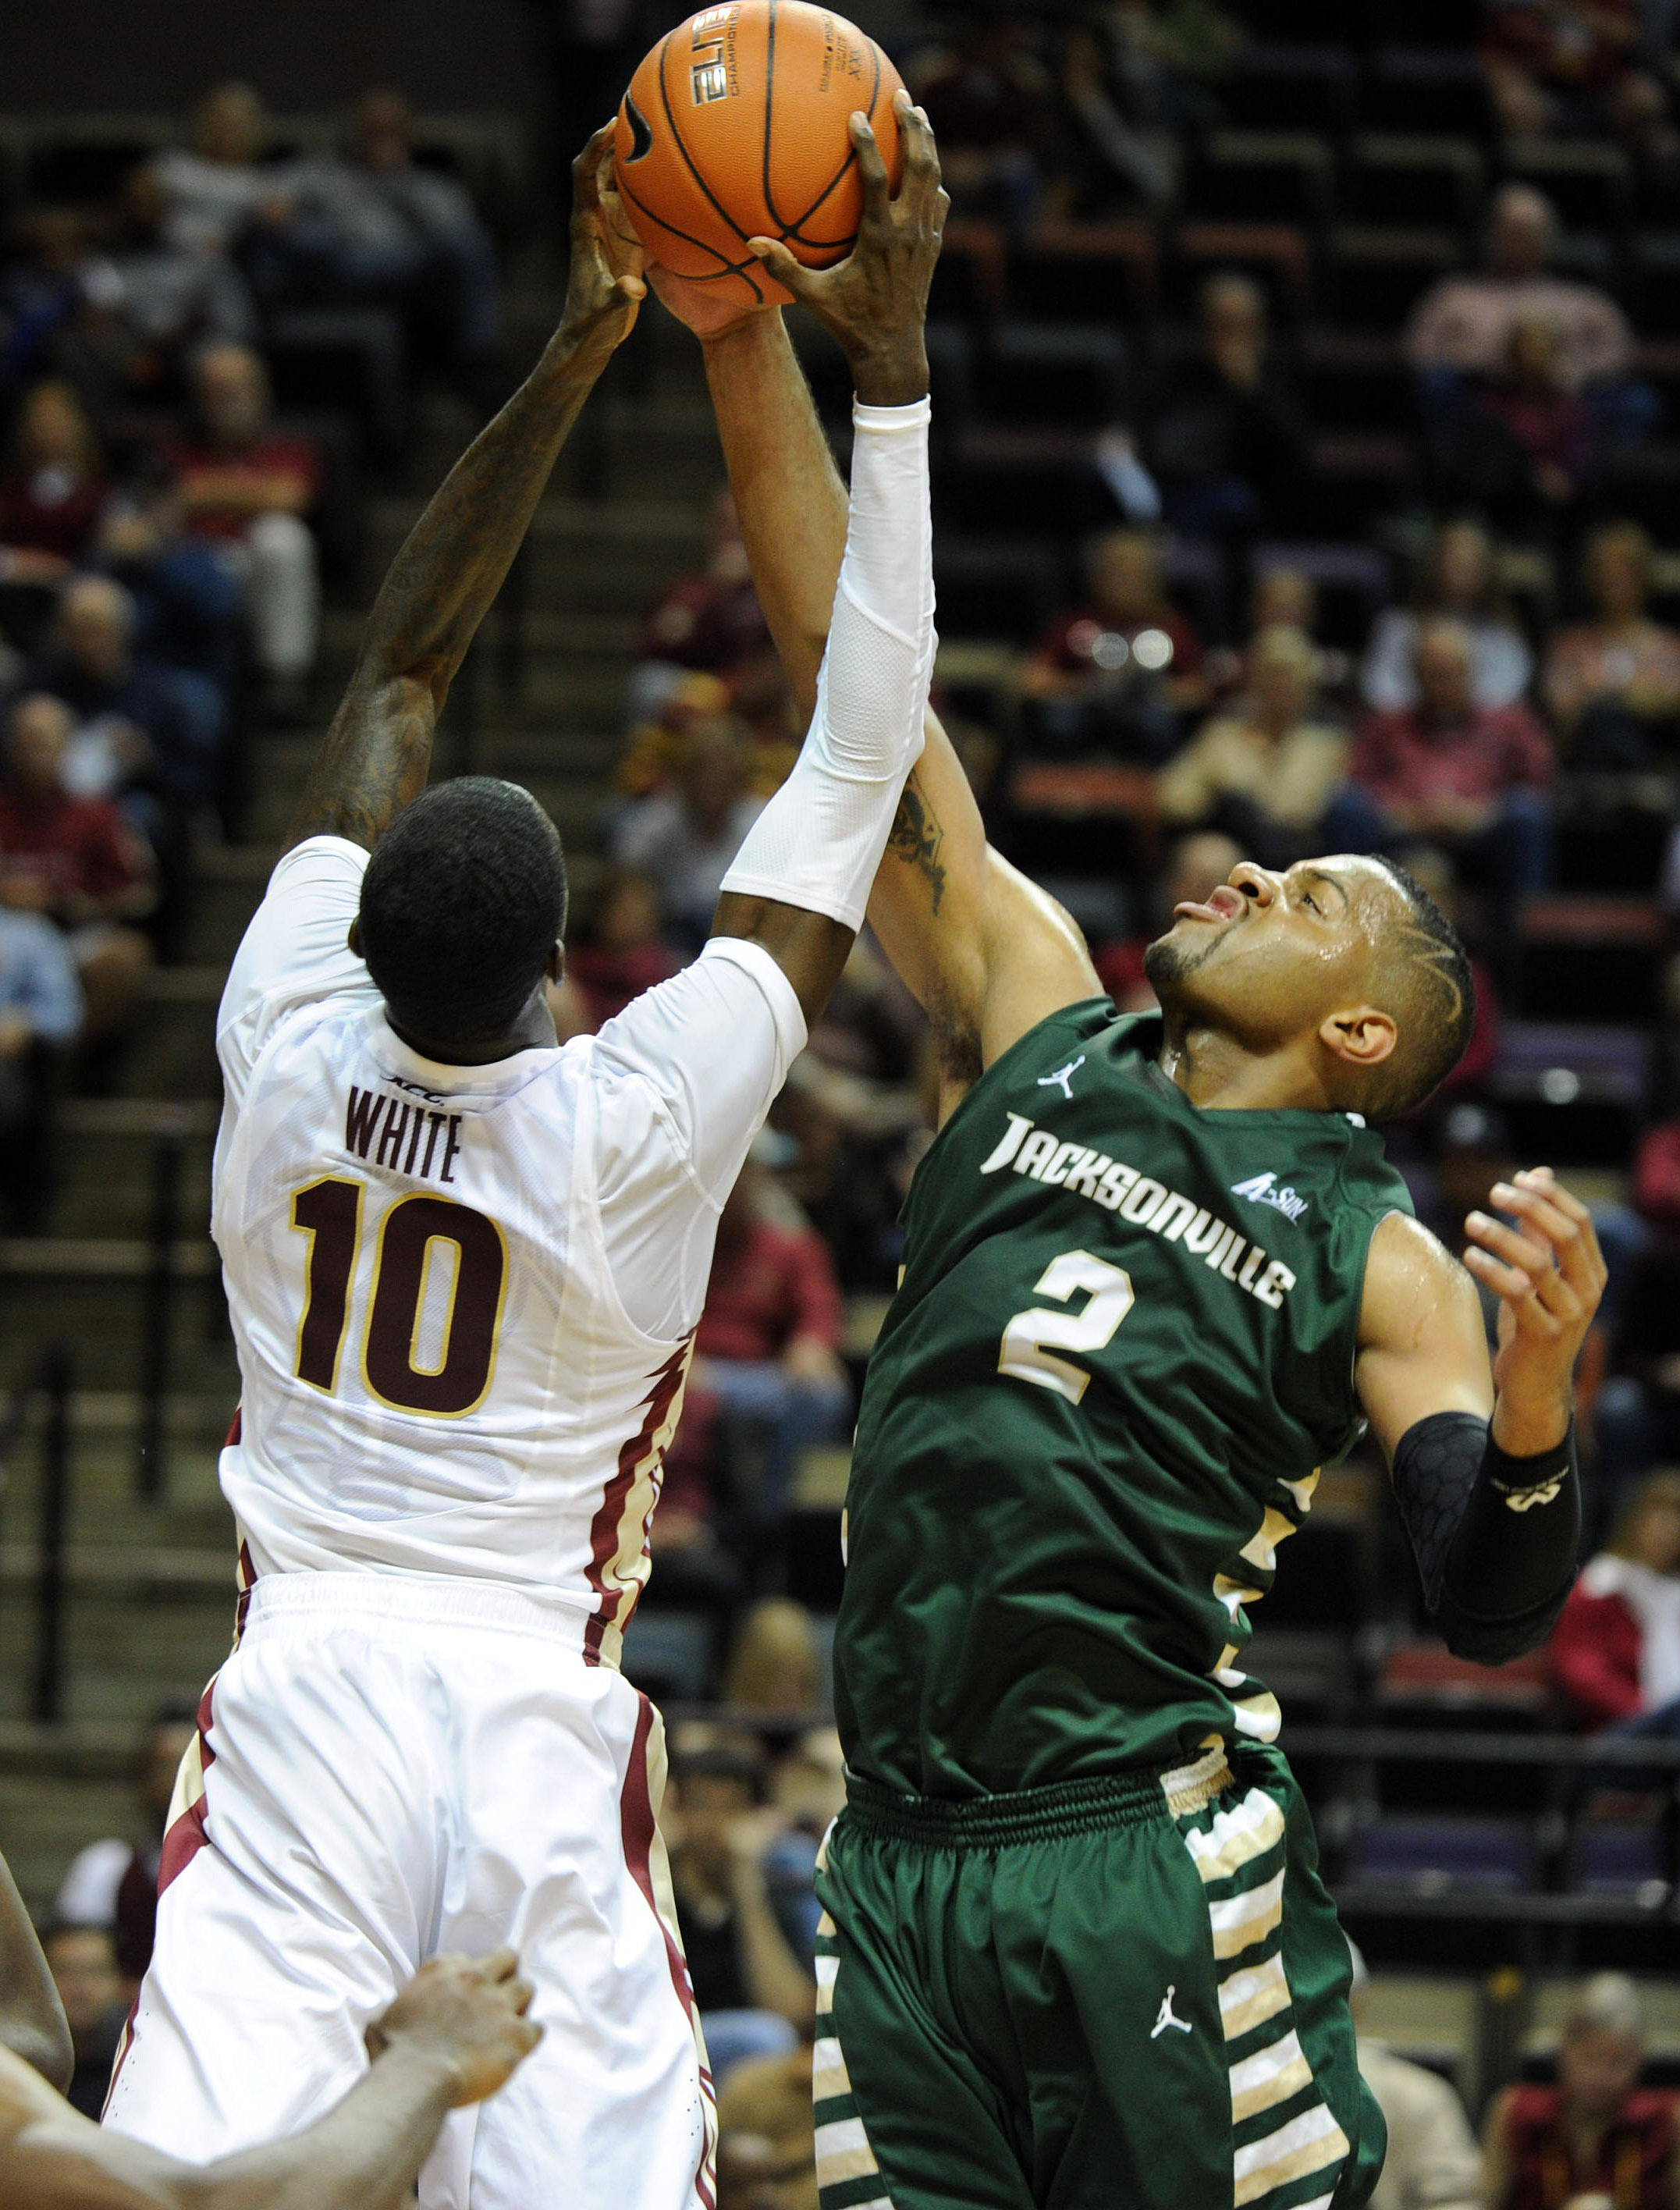 Nov 8, 2013; Tallahassee, FL, USA; Jacksonville Dolphins forward Kordario Fleming (2) tries to recover a rebound past Florida State Seminoles forward Okaro White (10) during the first half at the Donald L. Tucker Center. Mandatory Credit: Melina Vastola-USA TODAY Sports